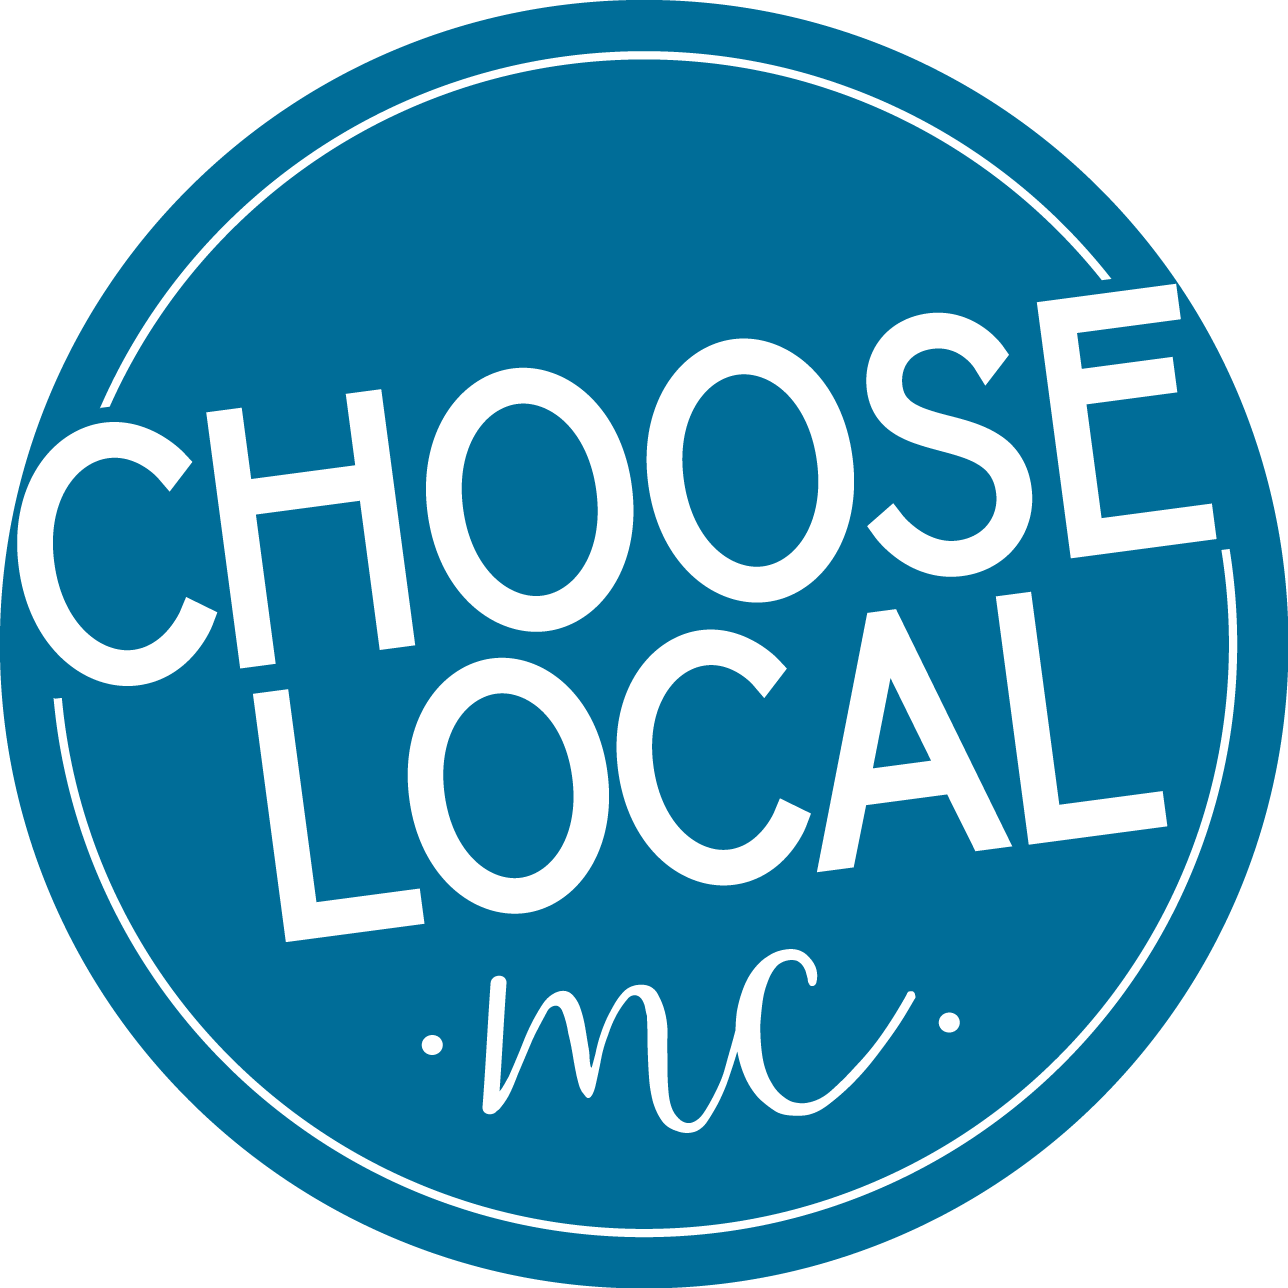 Choose Local